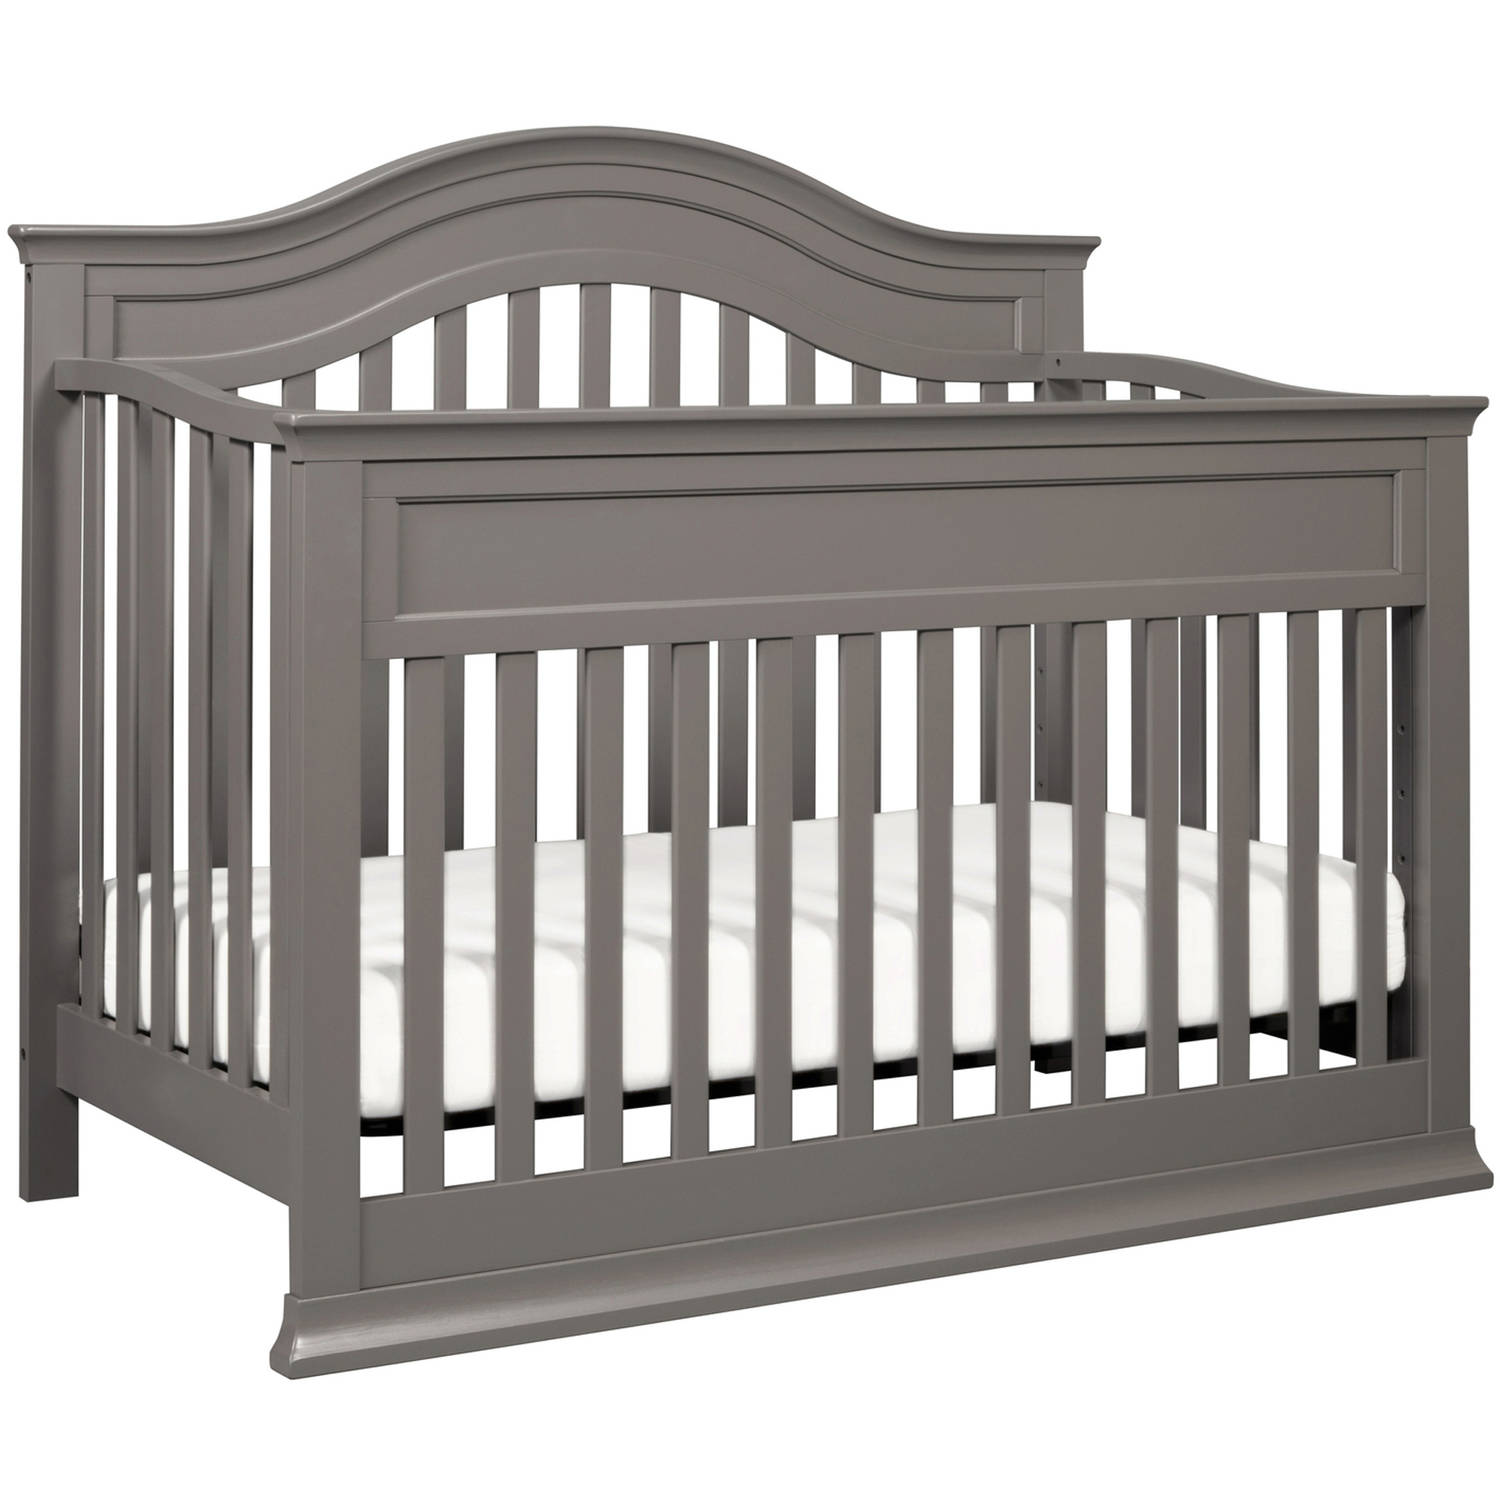 DaVinci Brook 4-in-1 Convertible Crib, Choose Your Finish